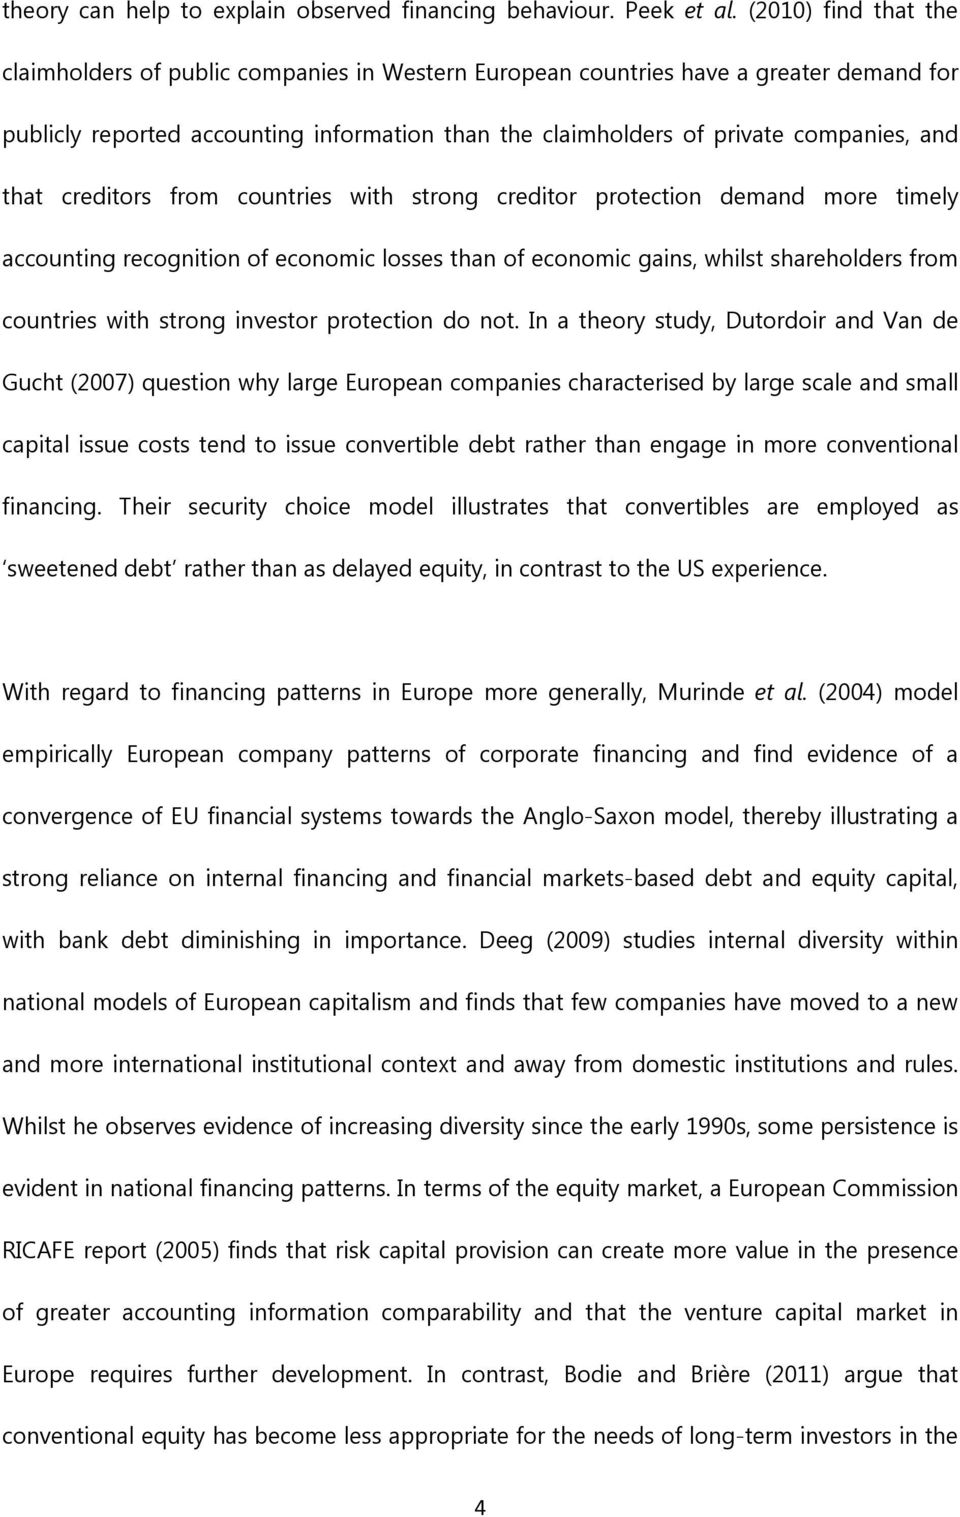 that creditors from countries with strong creditor protection demand more timely accounting recognition of economic losses than of economic gains, whilst shareholders from countries with strong